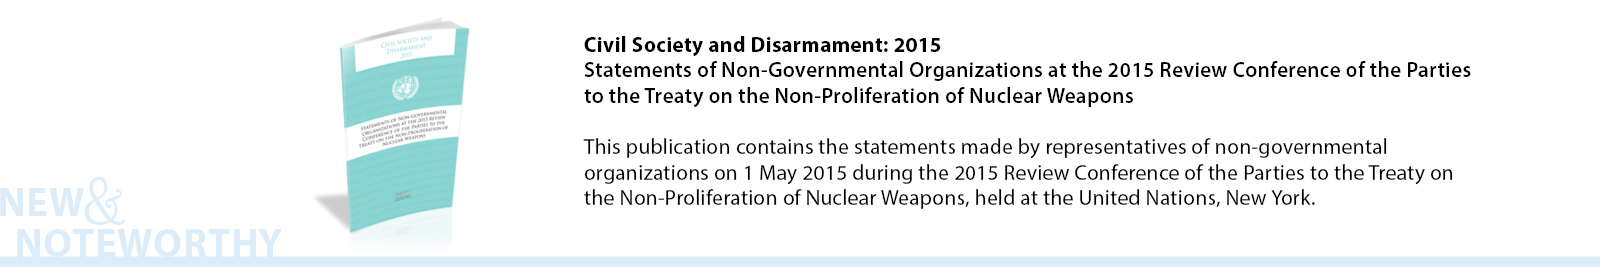 This publication contains the statements made by representatives of non-governmental organizations on 1 May 2015 during the 2015 Review Conference of the Parties to the Treaty on the Non-Proliferation of Nuclear Weapons, held at the United Nations, New York.